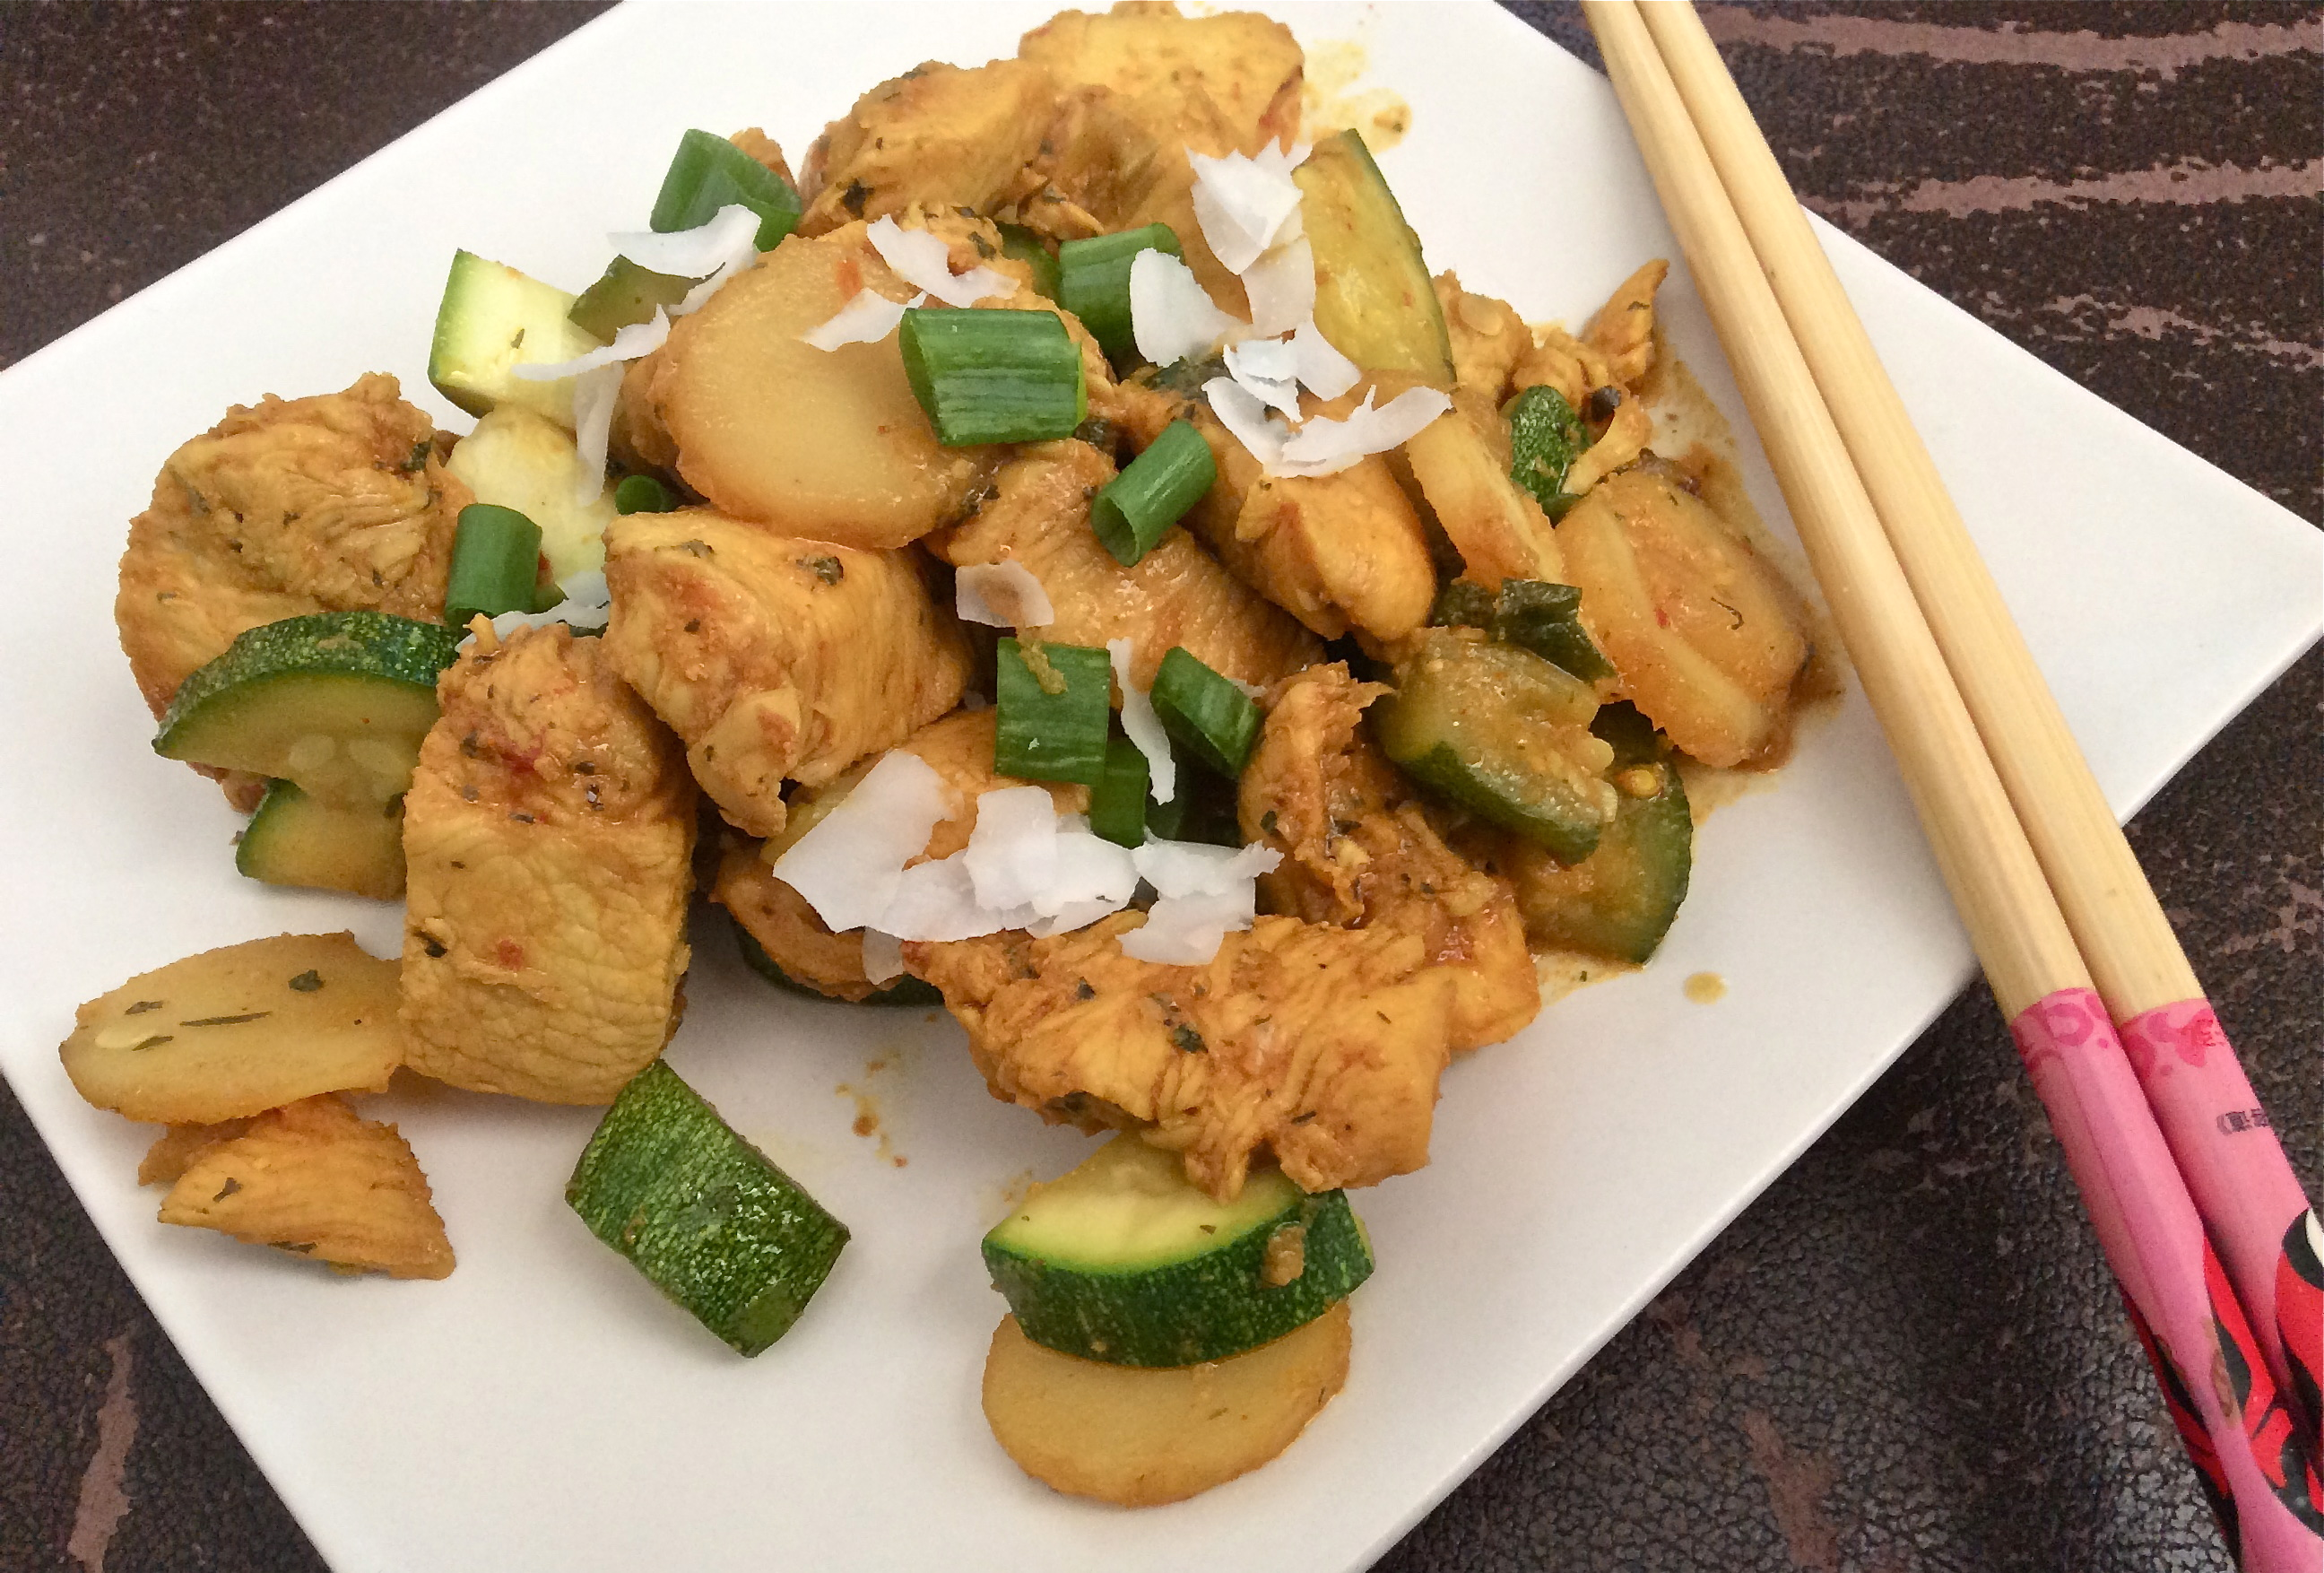 Spicy Chicken and Zucchini Stir Fry